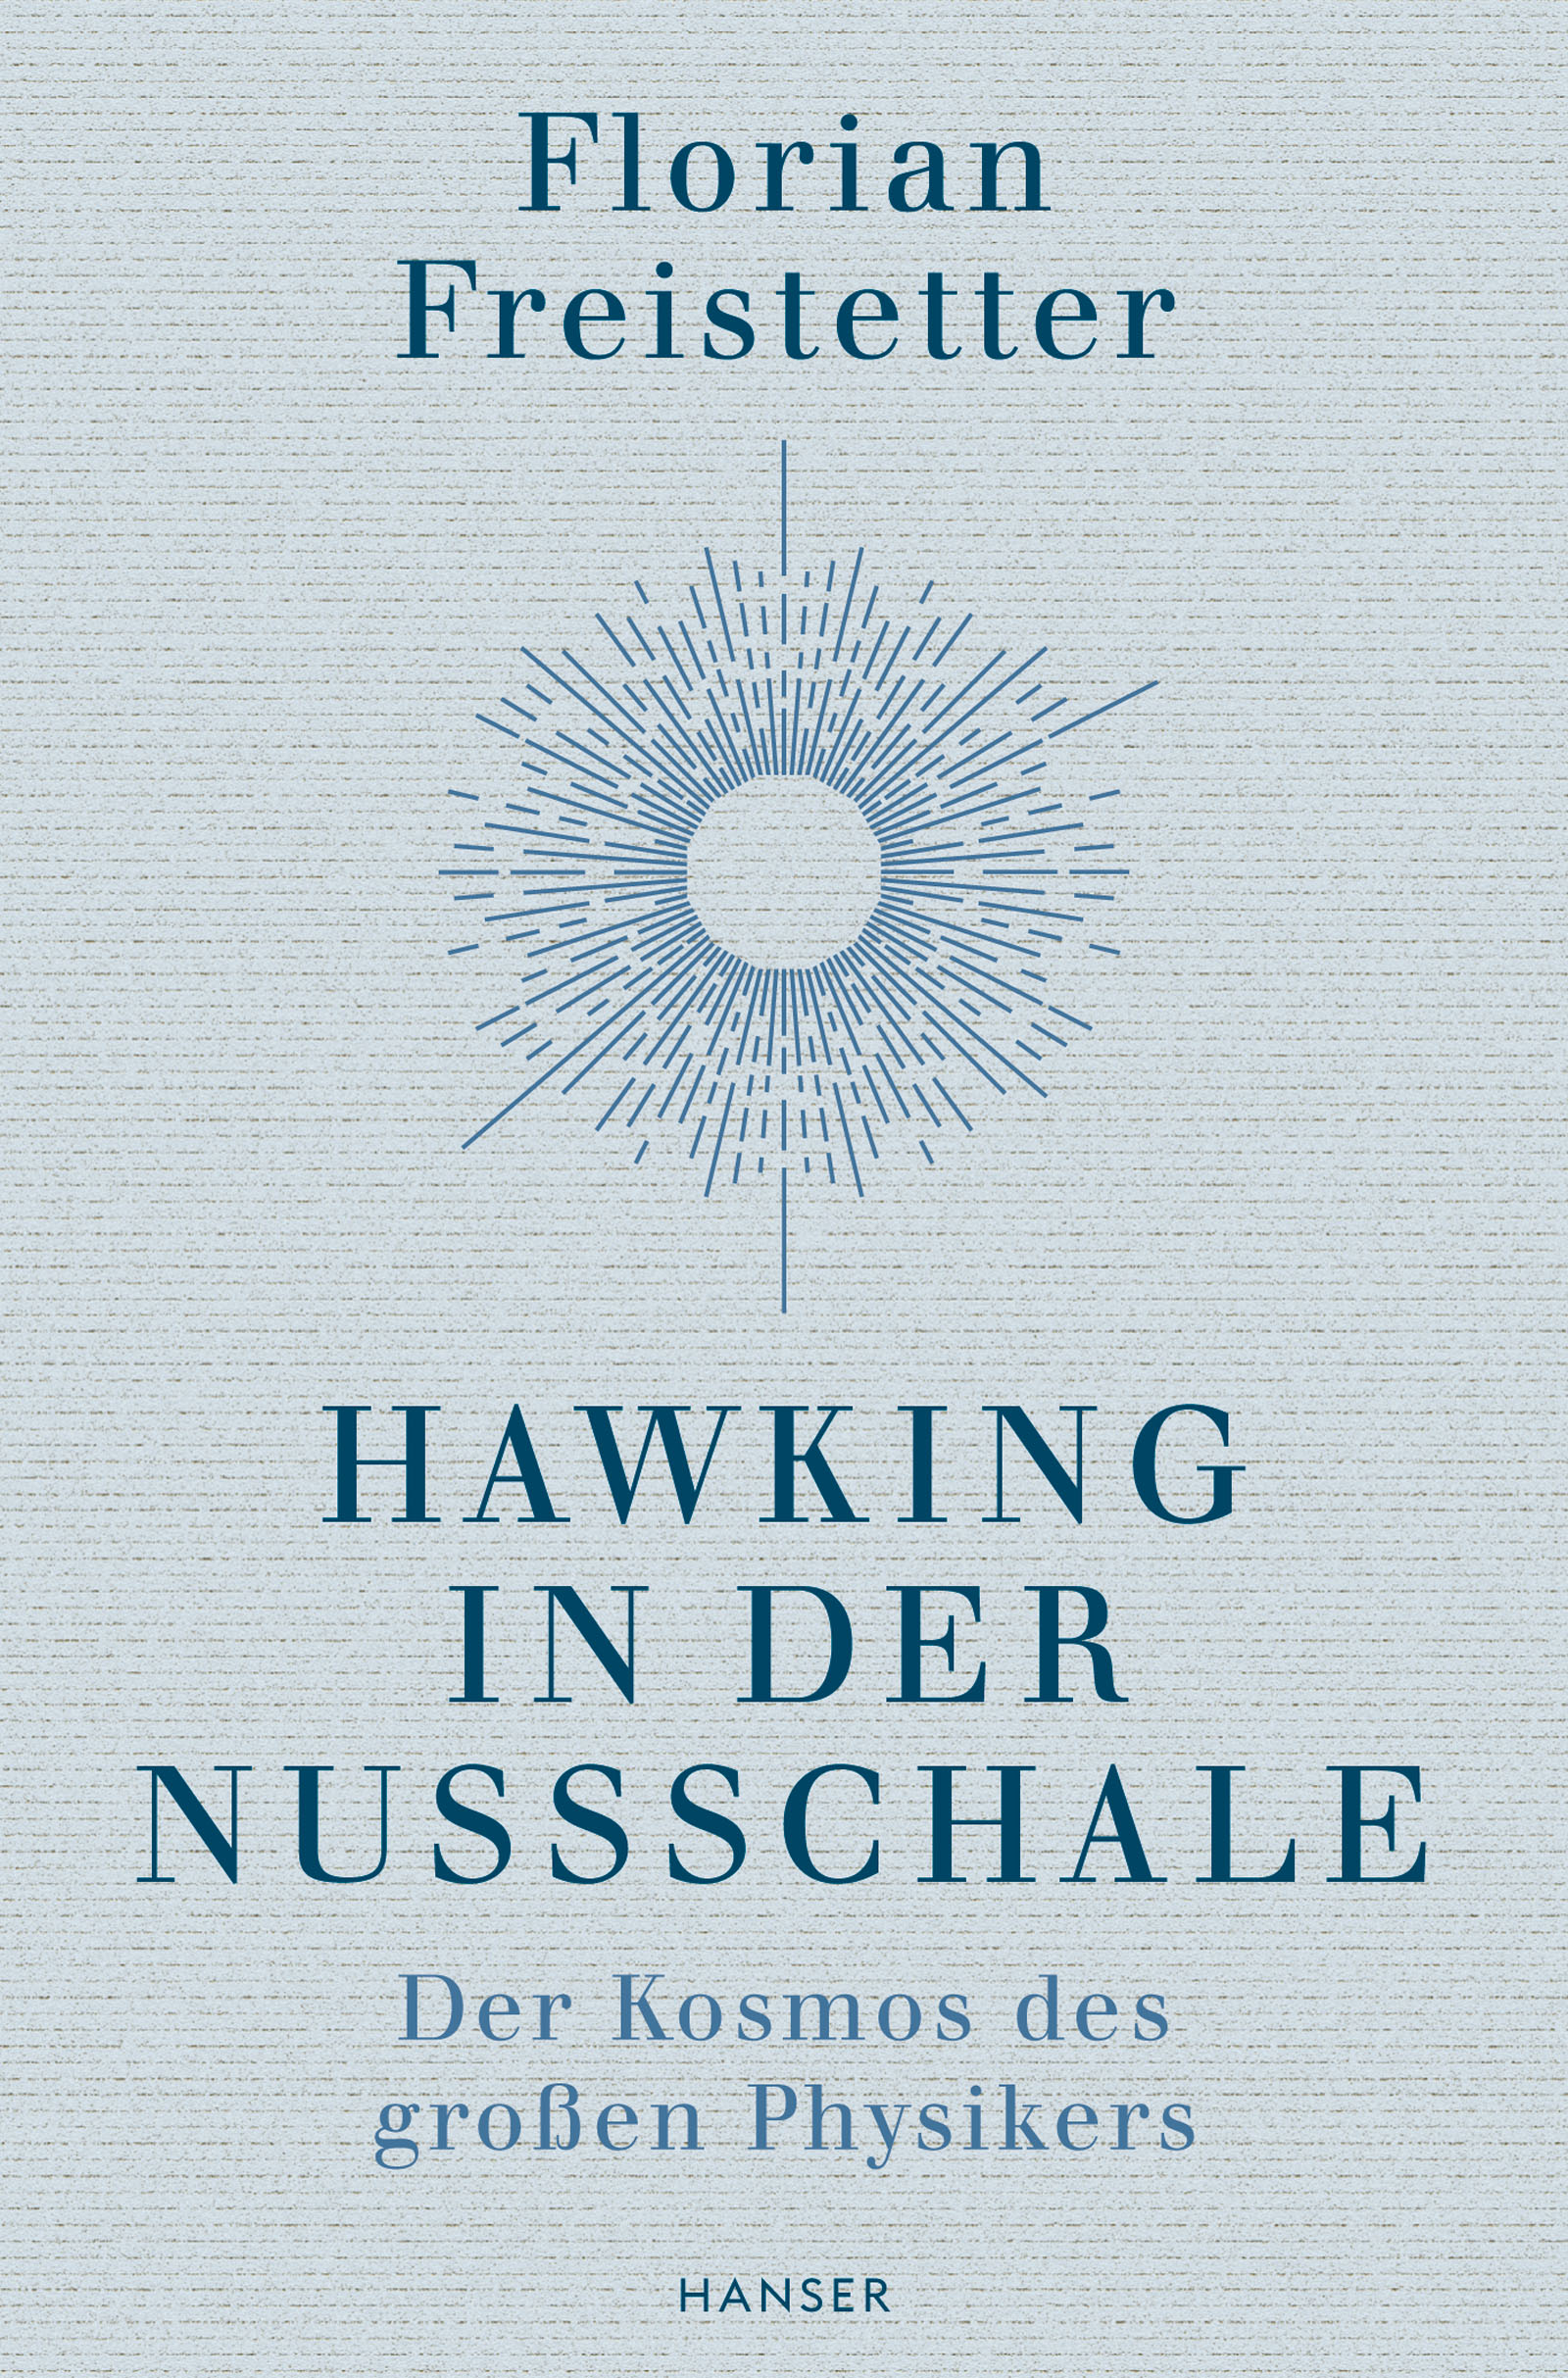 Hawking in der Nussschale